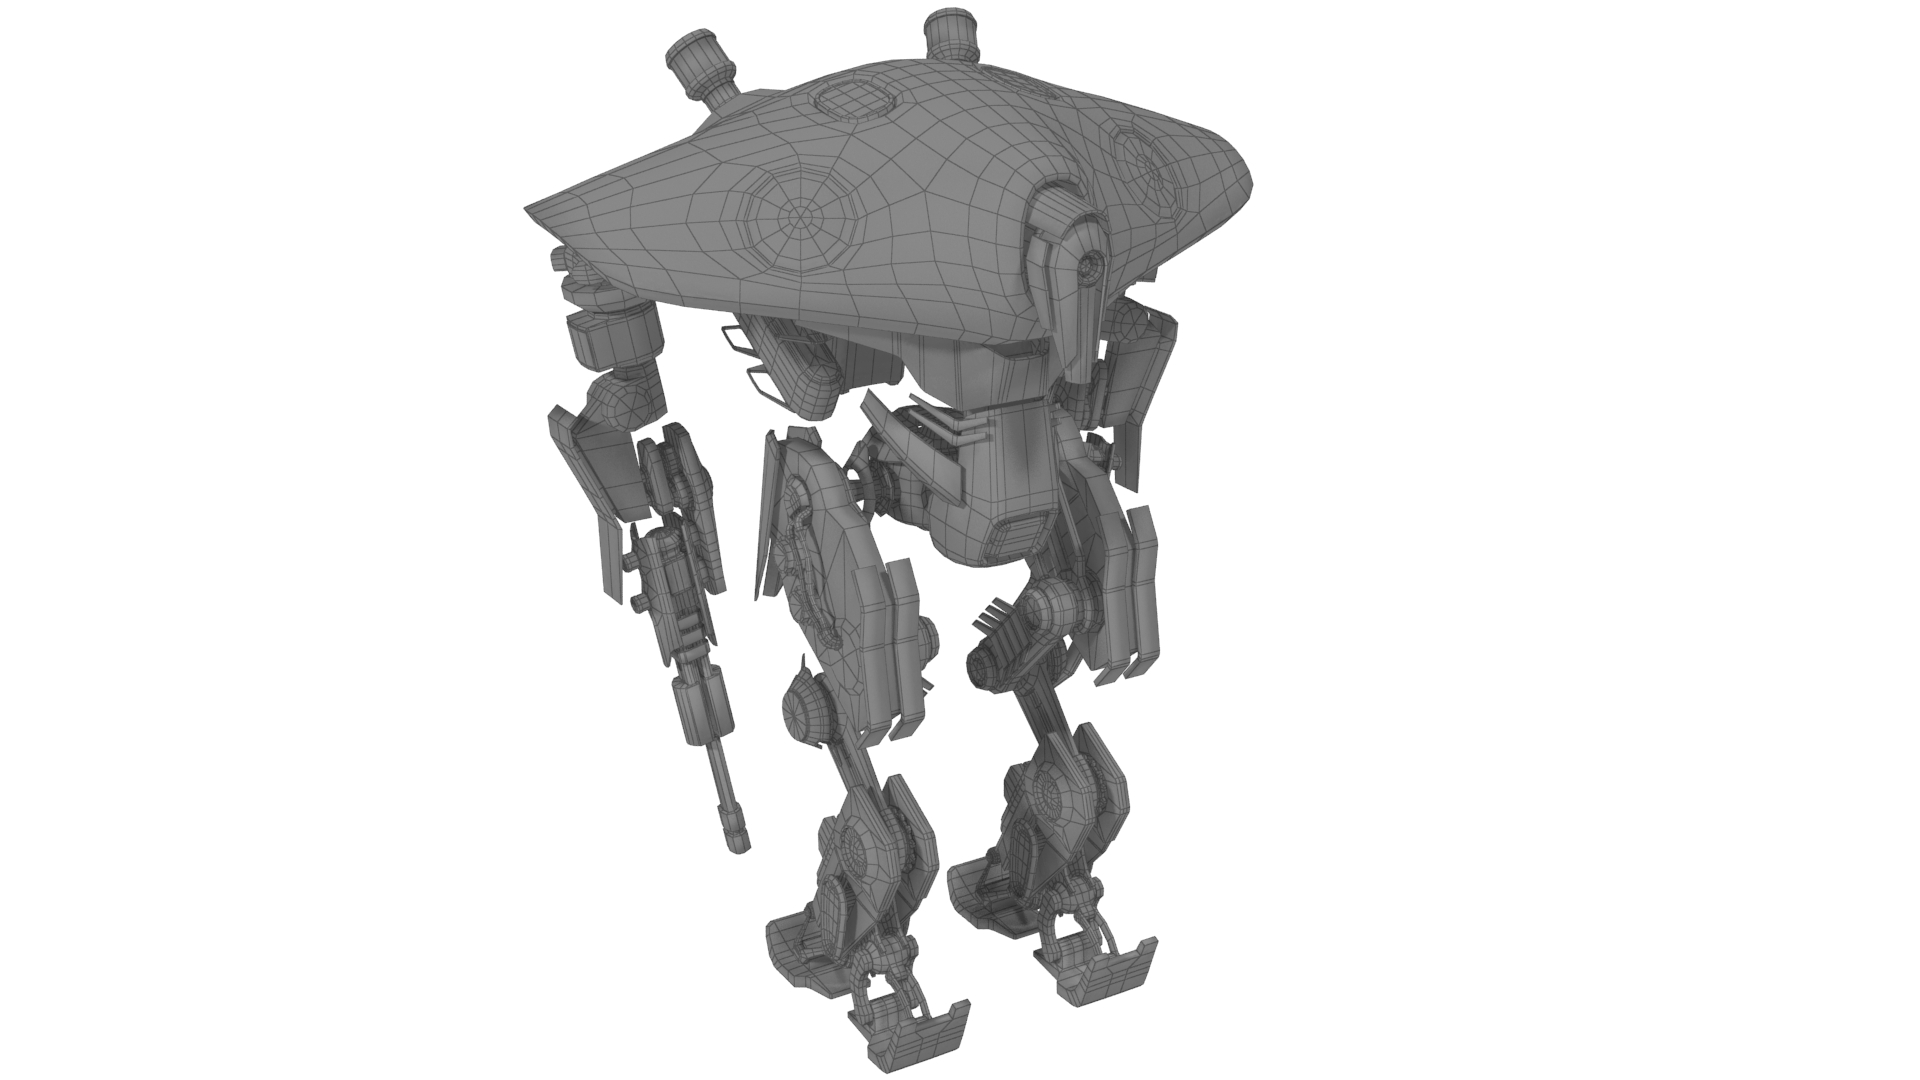 heavy robot vex700 3d model 3ds max fbx obj 279583